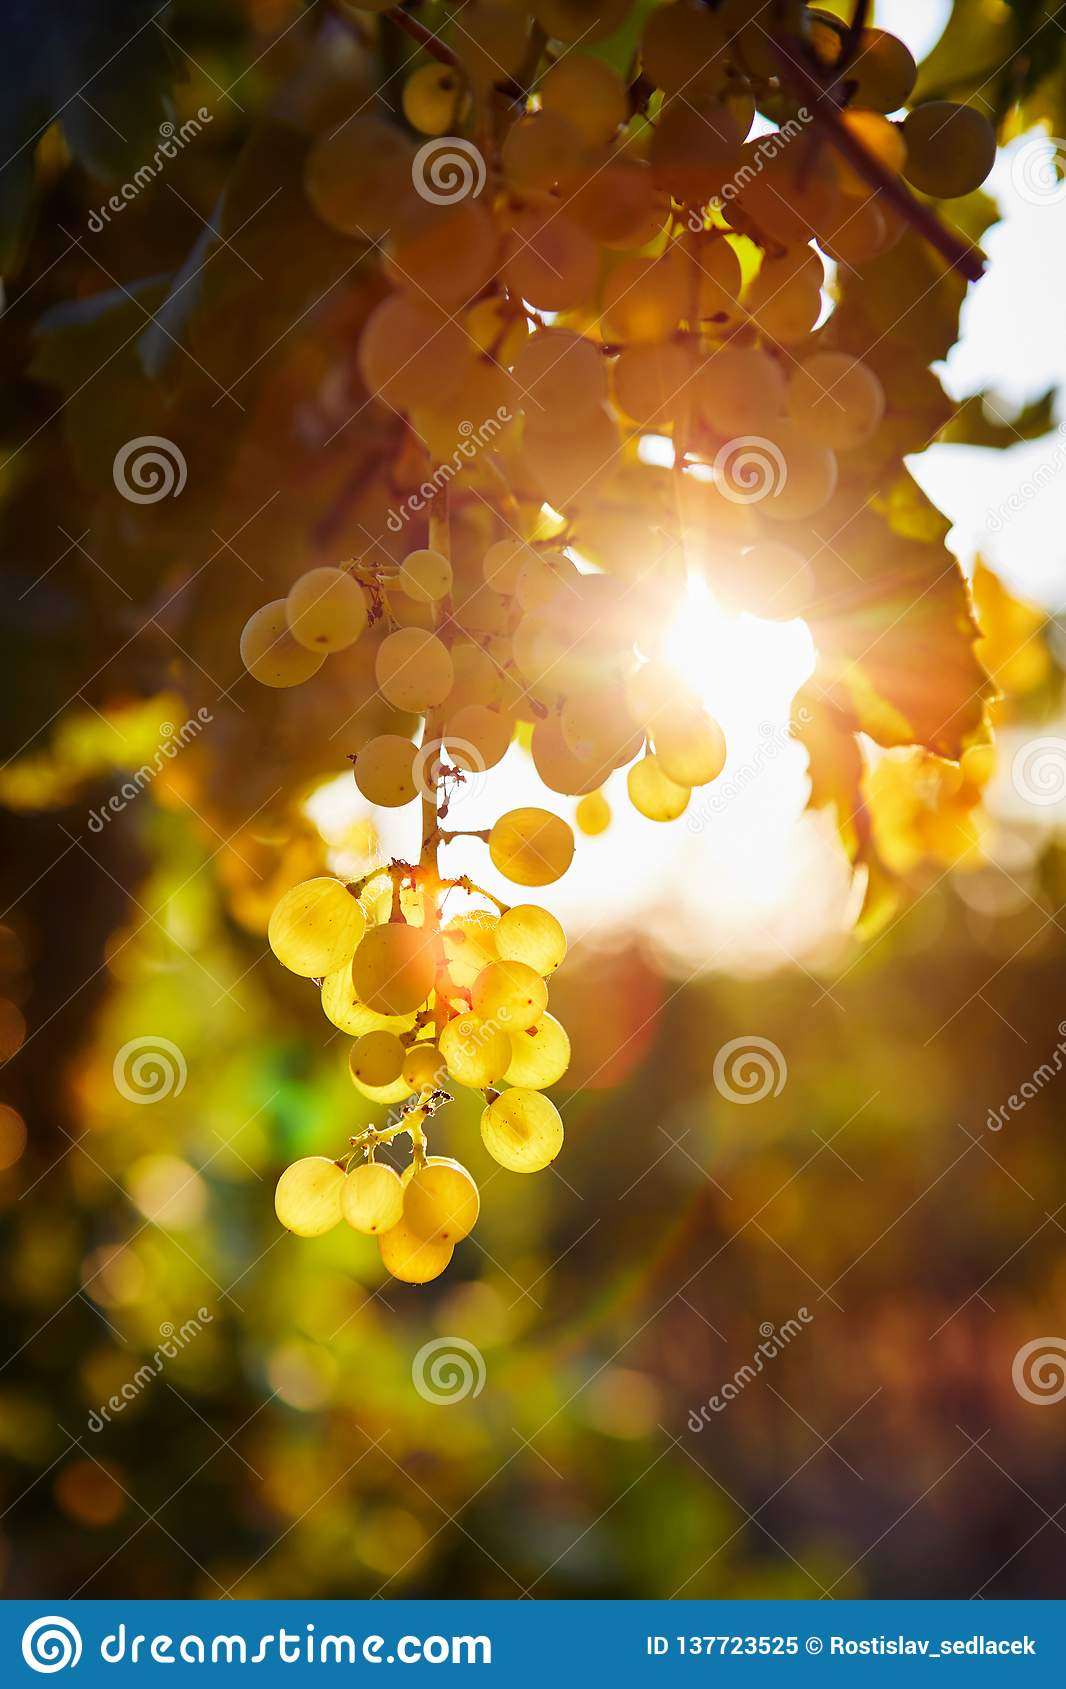 Yellow grapes in a vineyard at sunrise, with sun rays in the background